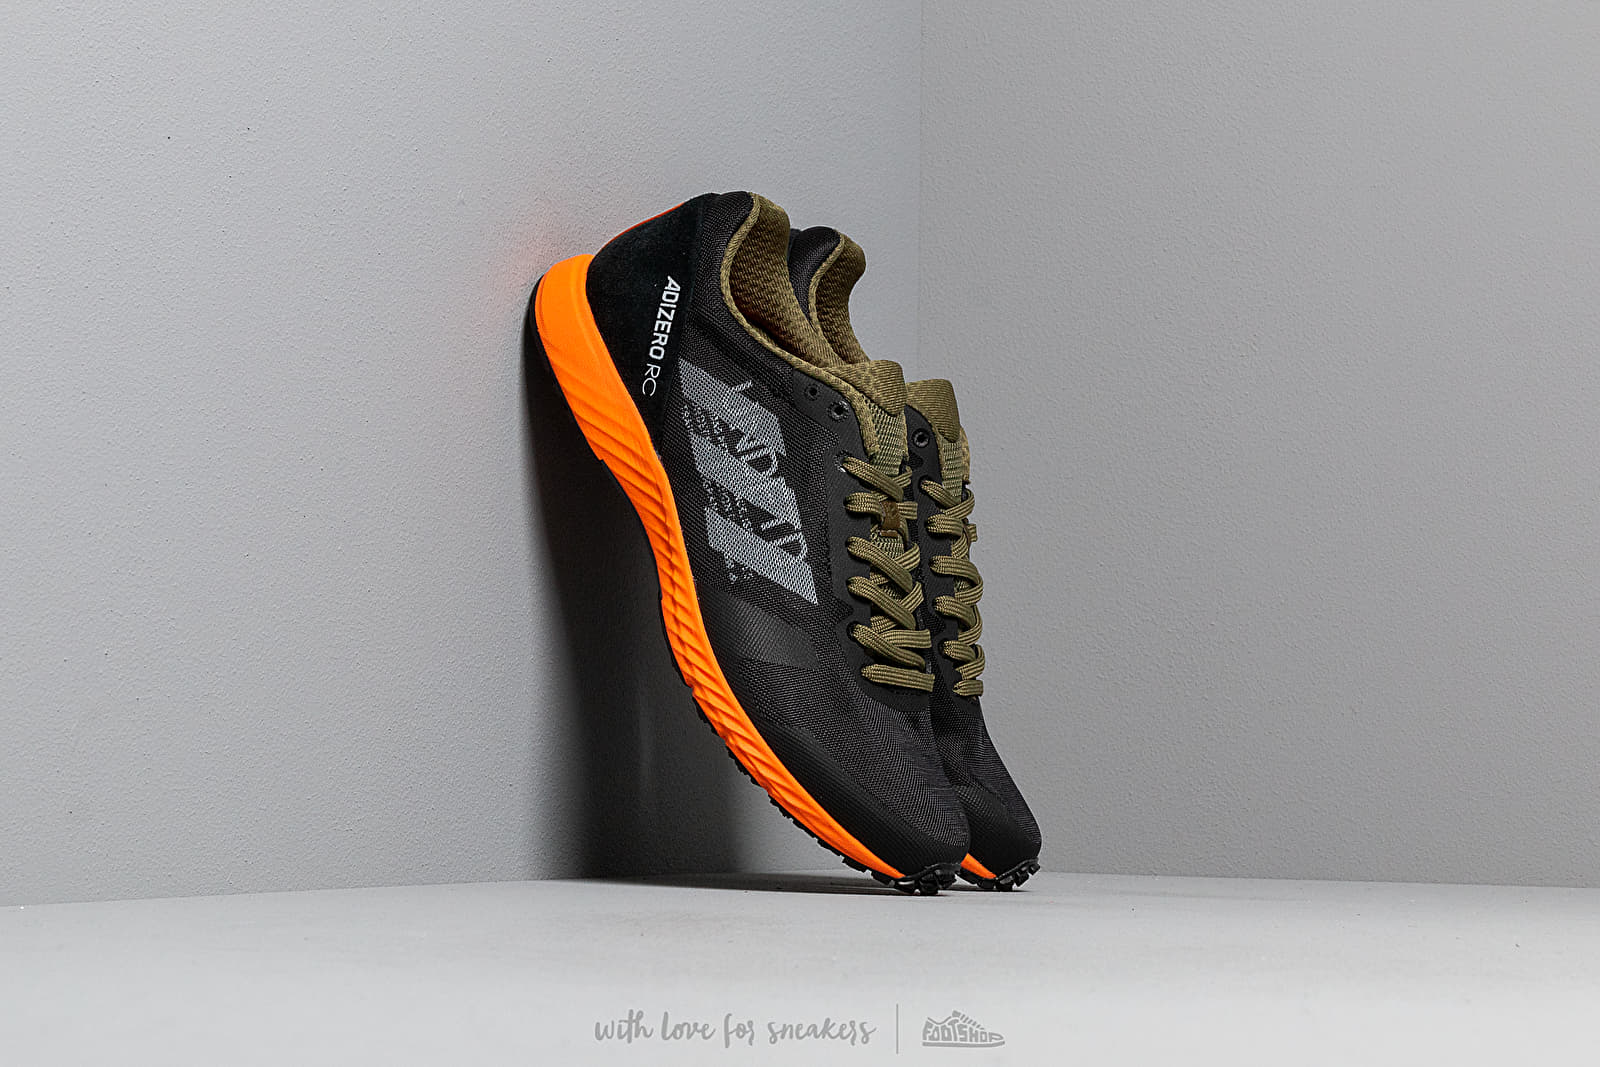 adidas x Undefeated Adizero RC Black-White/ Light Grey Heather/ Orange nagyszerű árakon 32 621 Ft vásárolj a Footshopban